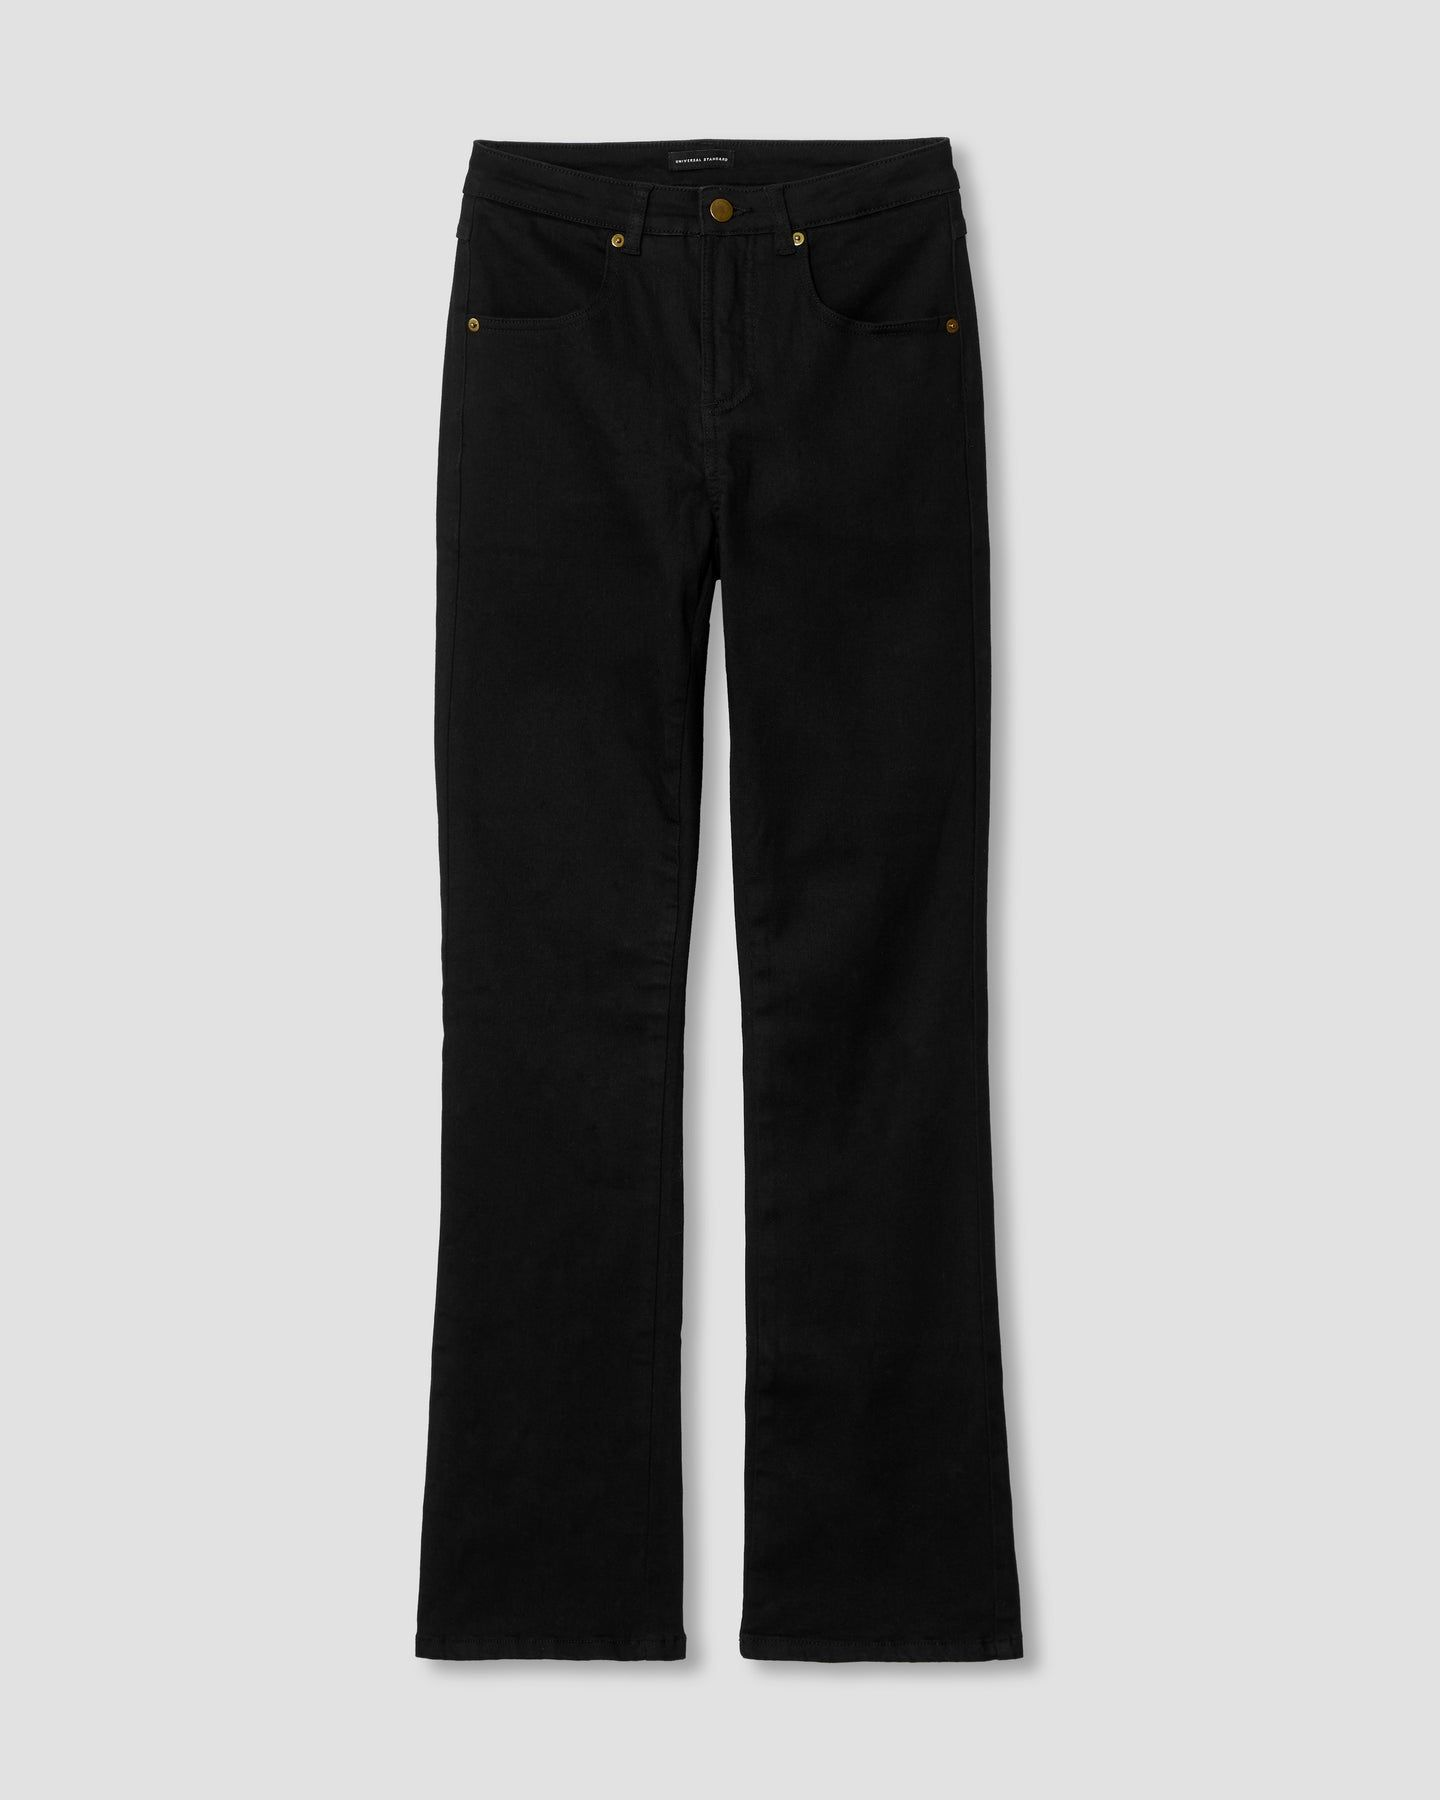 Marne Bootcut Jeans 32 inch - Black - image 1